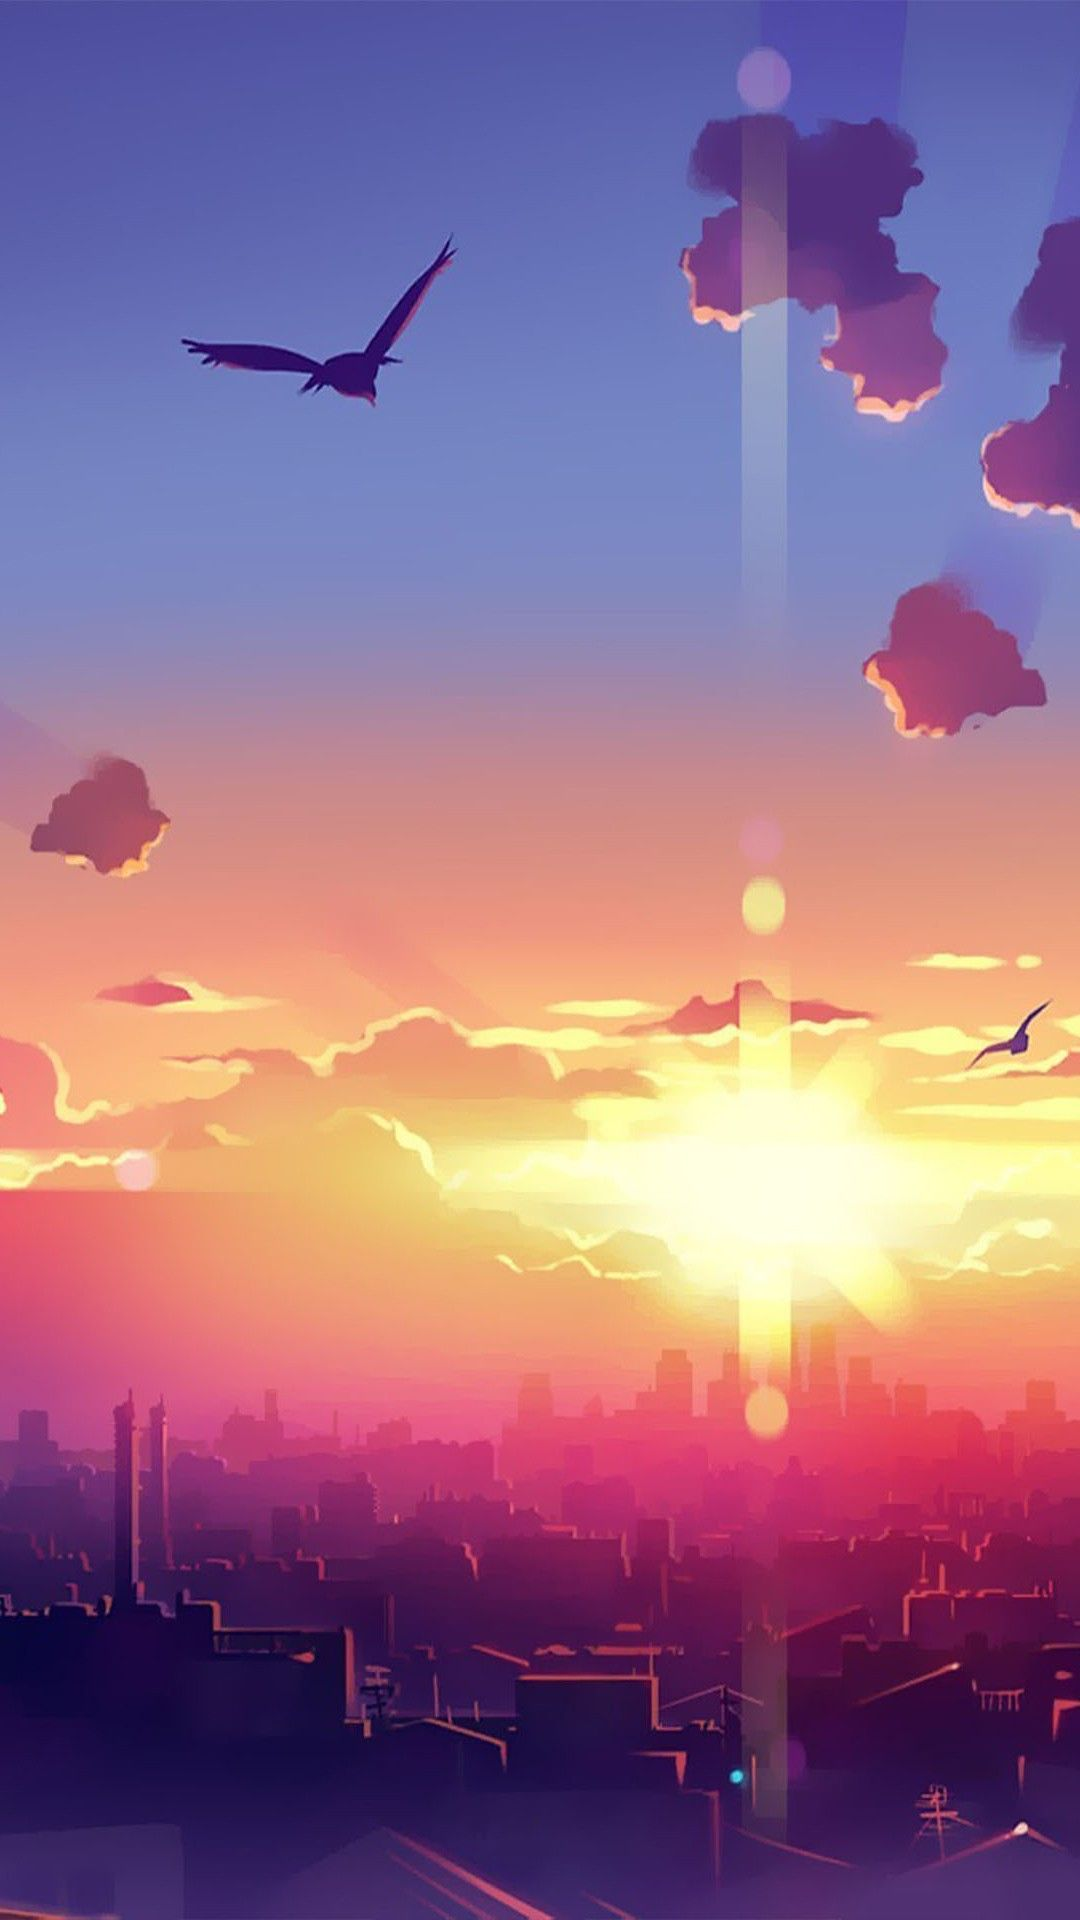 Sunrise Anime Wallpapers Top Free Sunrise Anime Backgrounds Wallpaperaccess